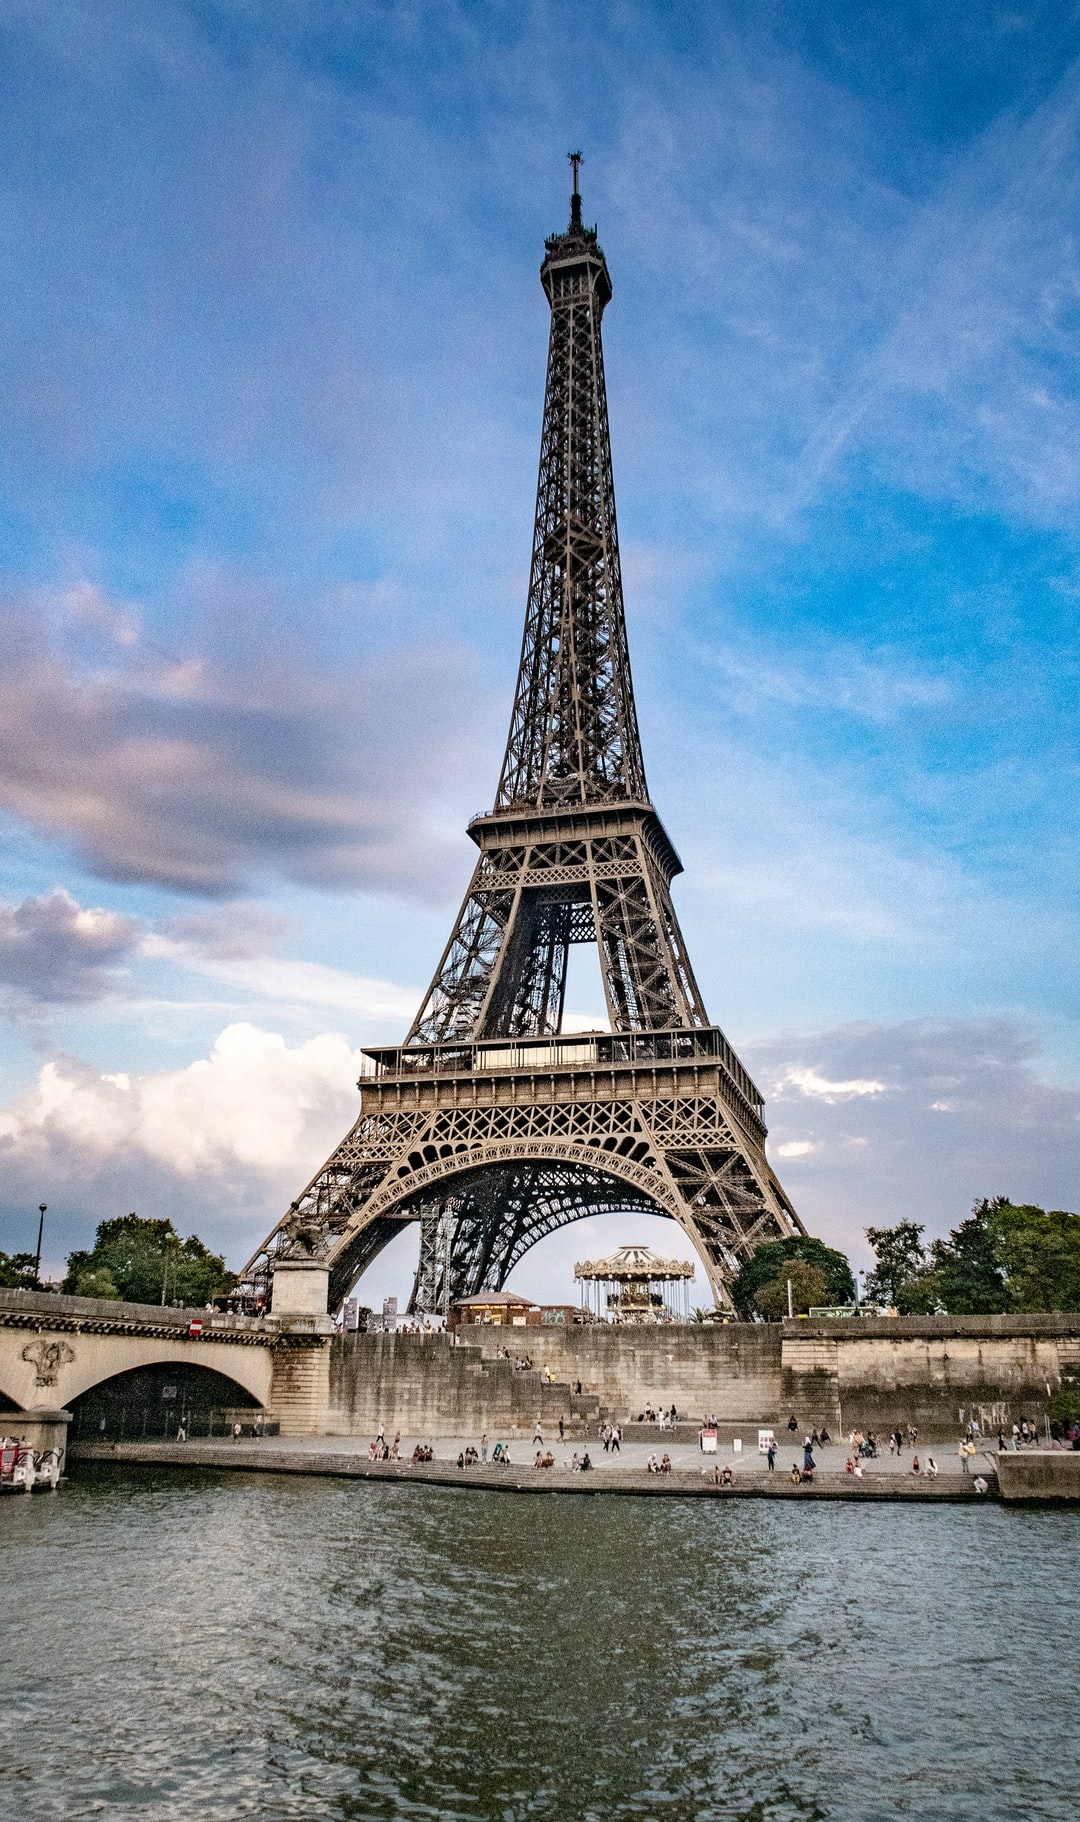 100+ Eiffel-Tower Images - France [HD] | Download Free